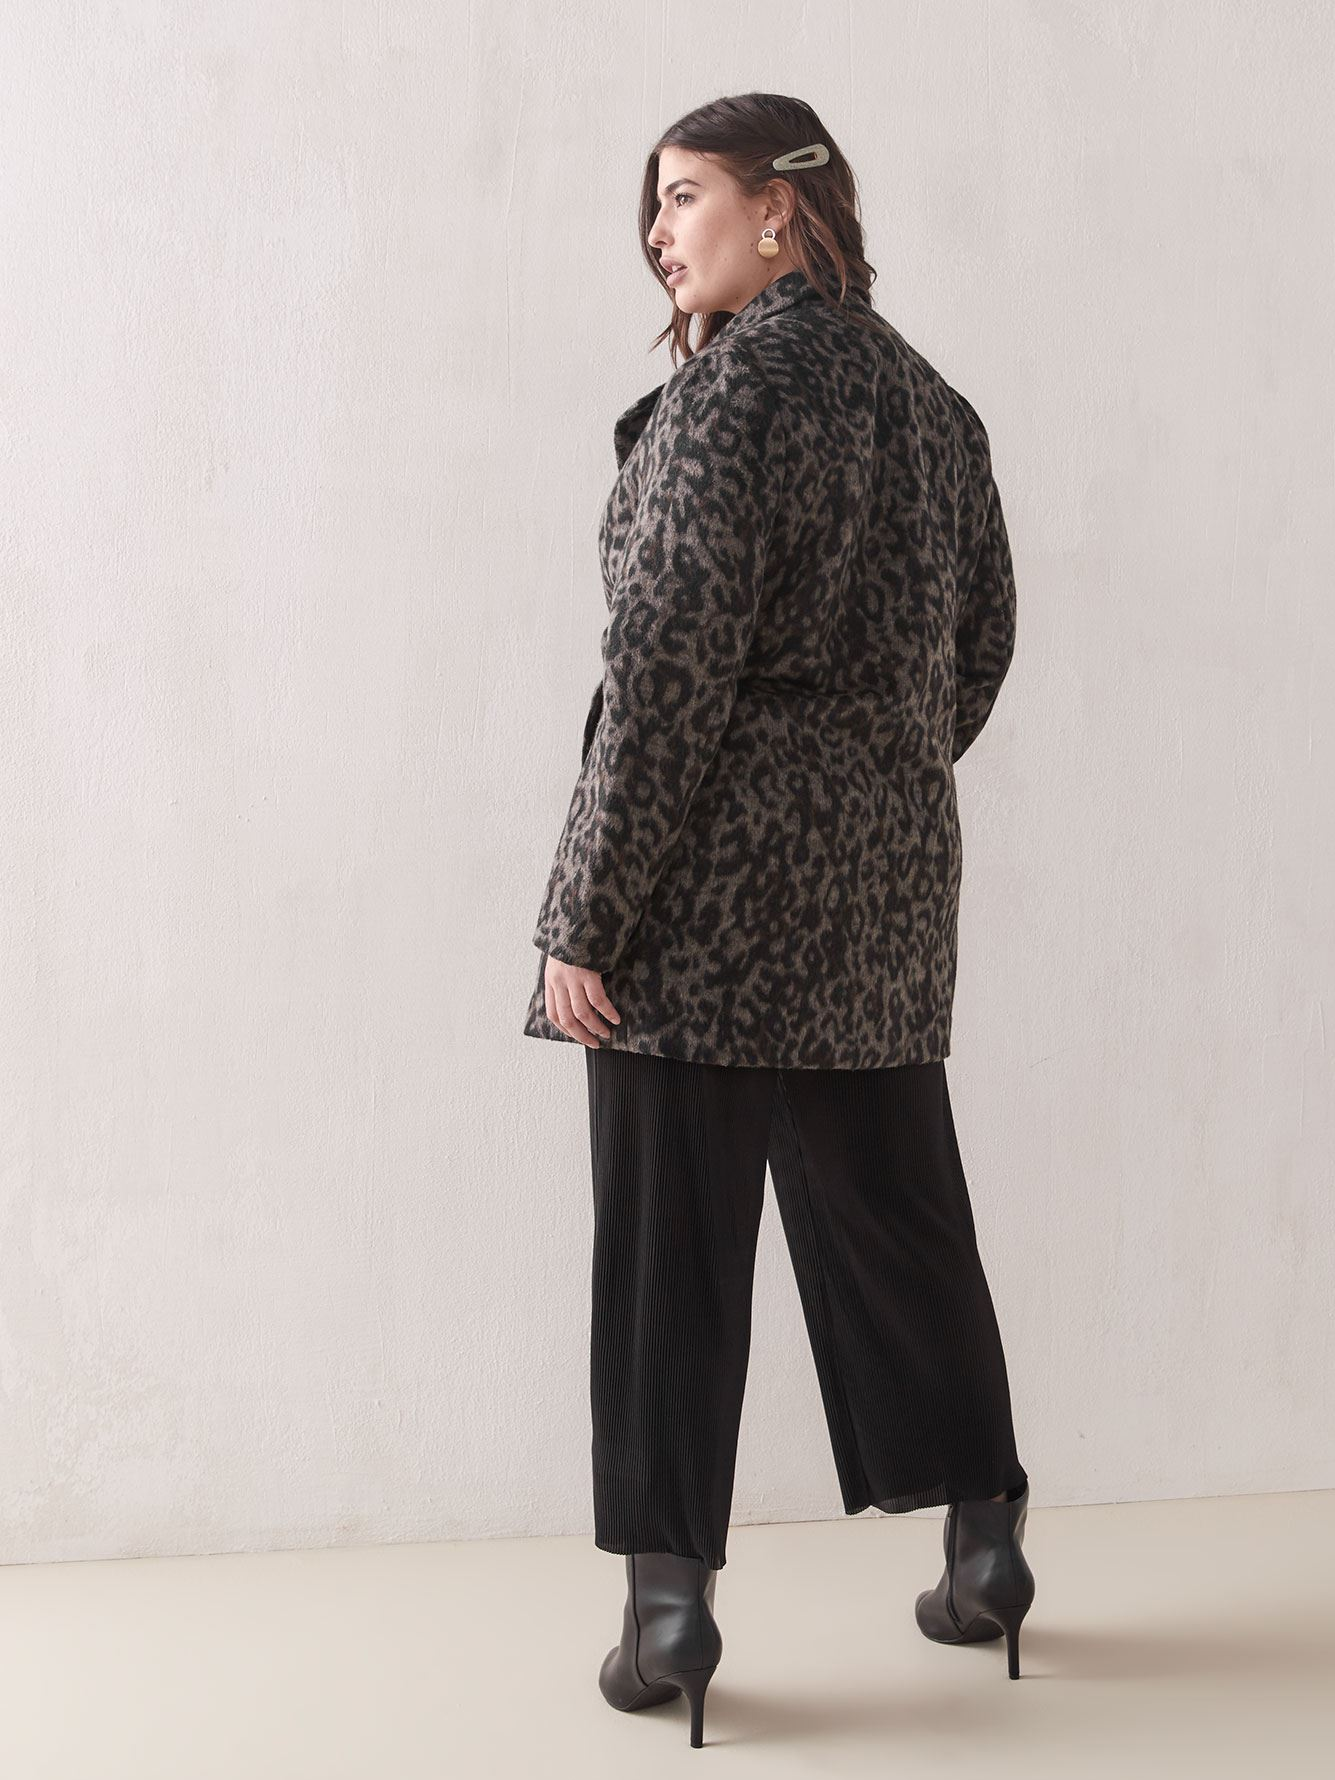 Leopard Print Wool-Blend Coat - Addition Elle